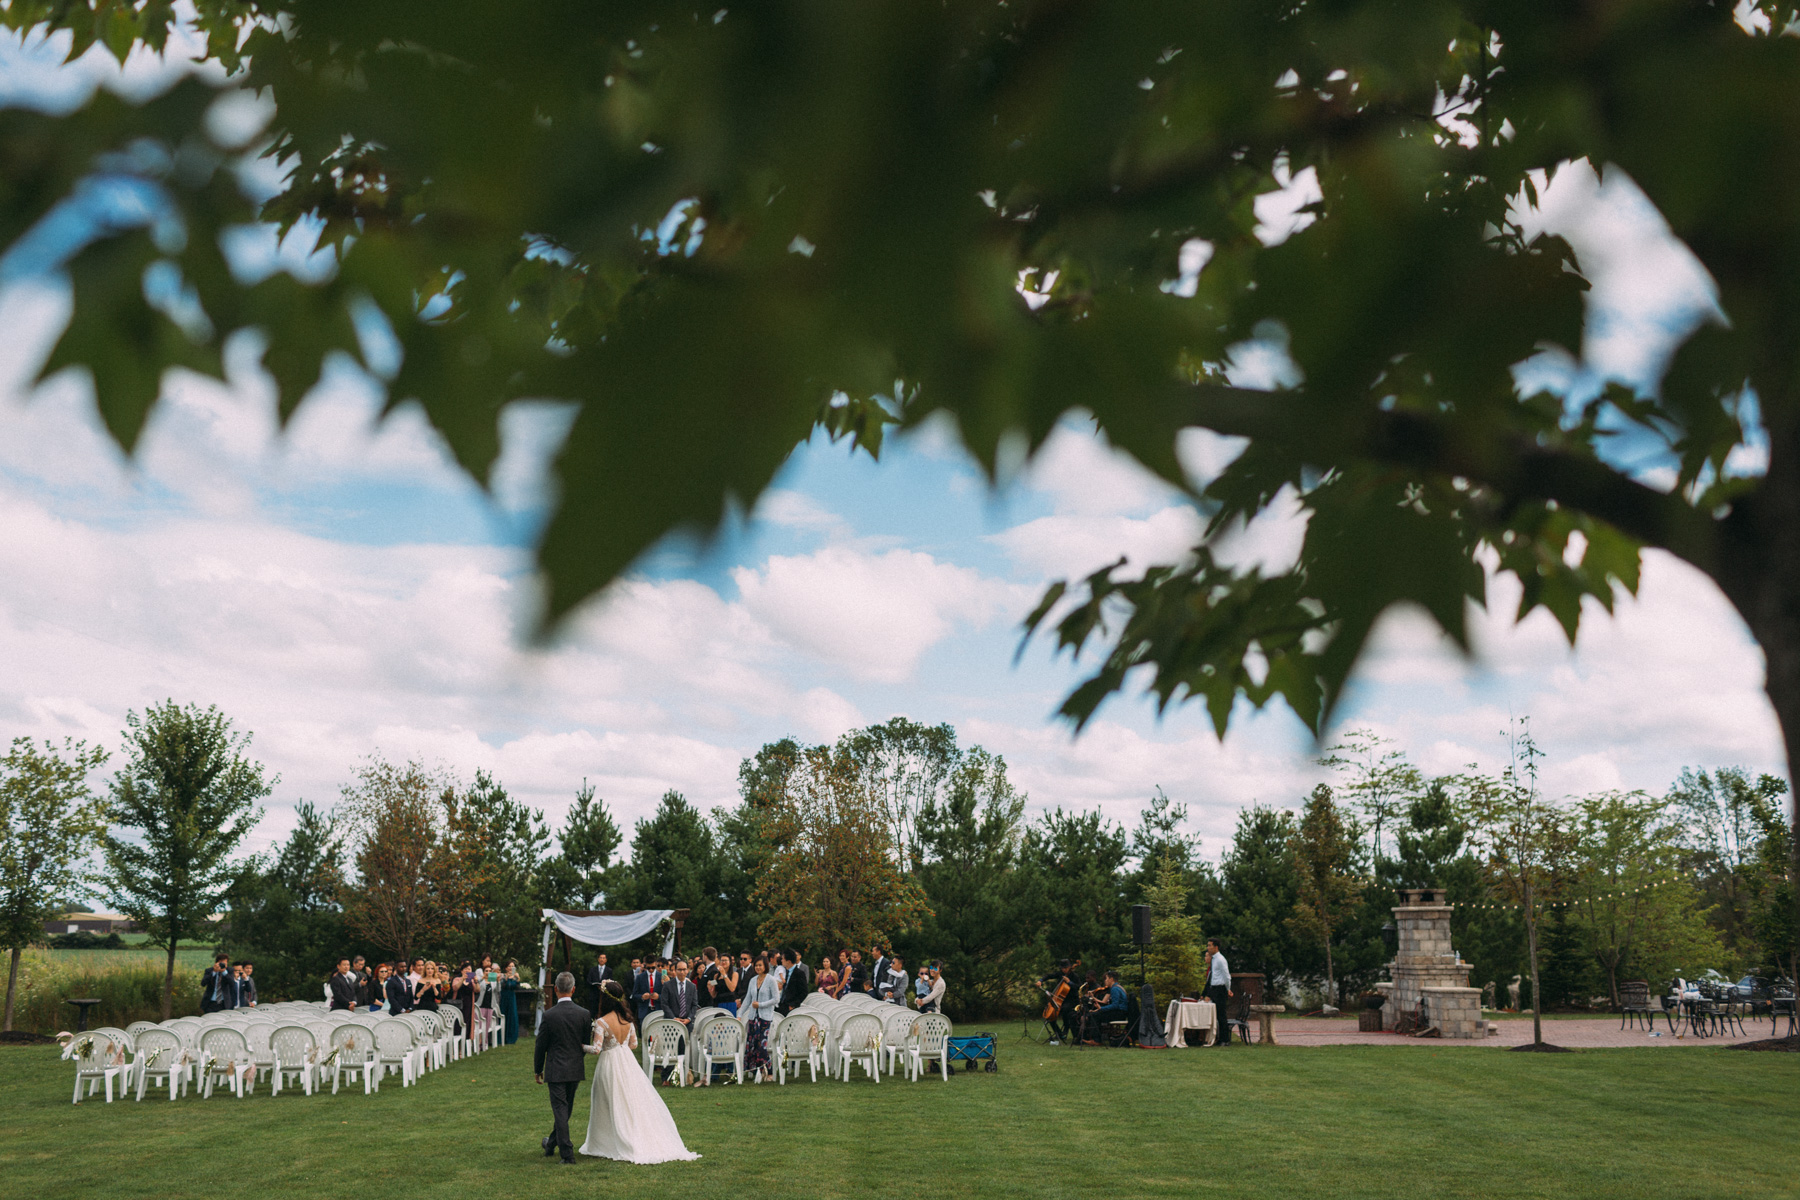 Belcroft-Estates-&-Event-Centre-wedding-photography-by-Sam-Wong-of-Artanis-Collective_037.jpg